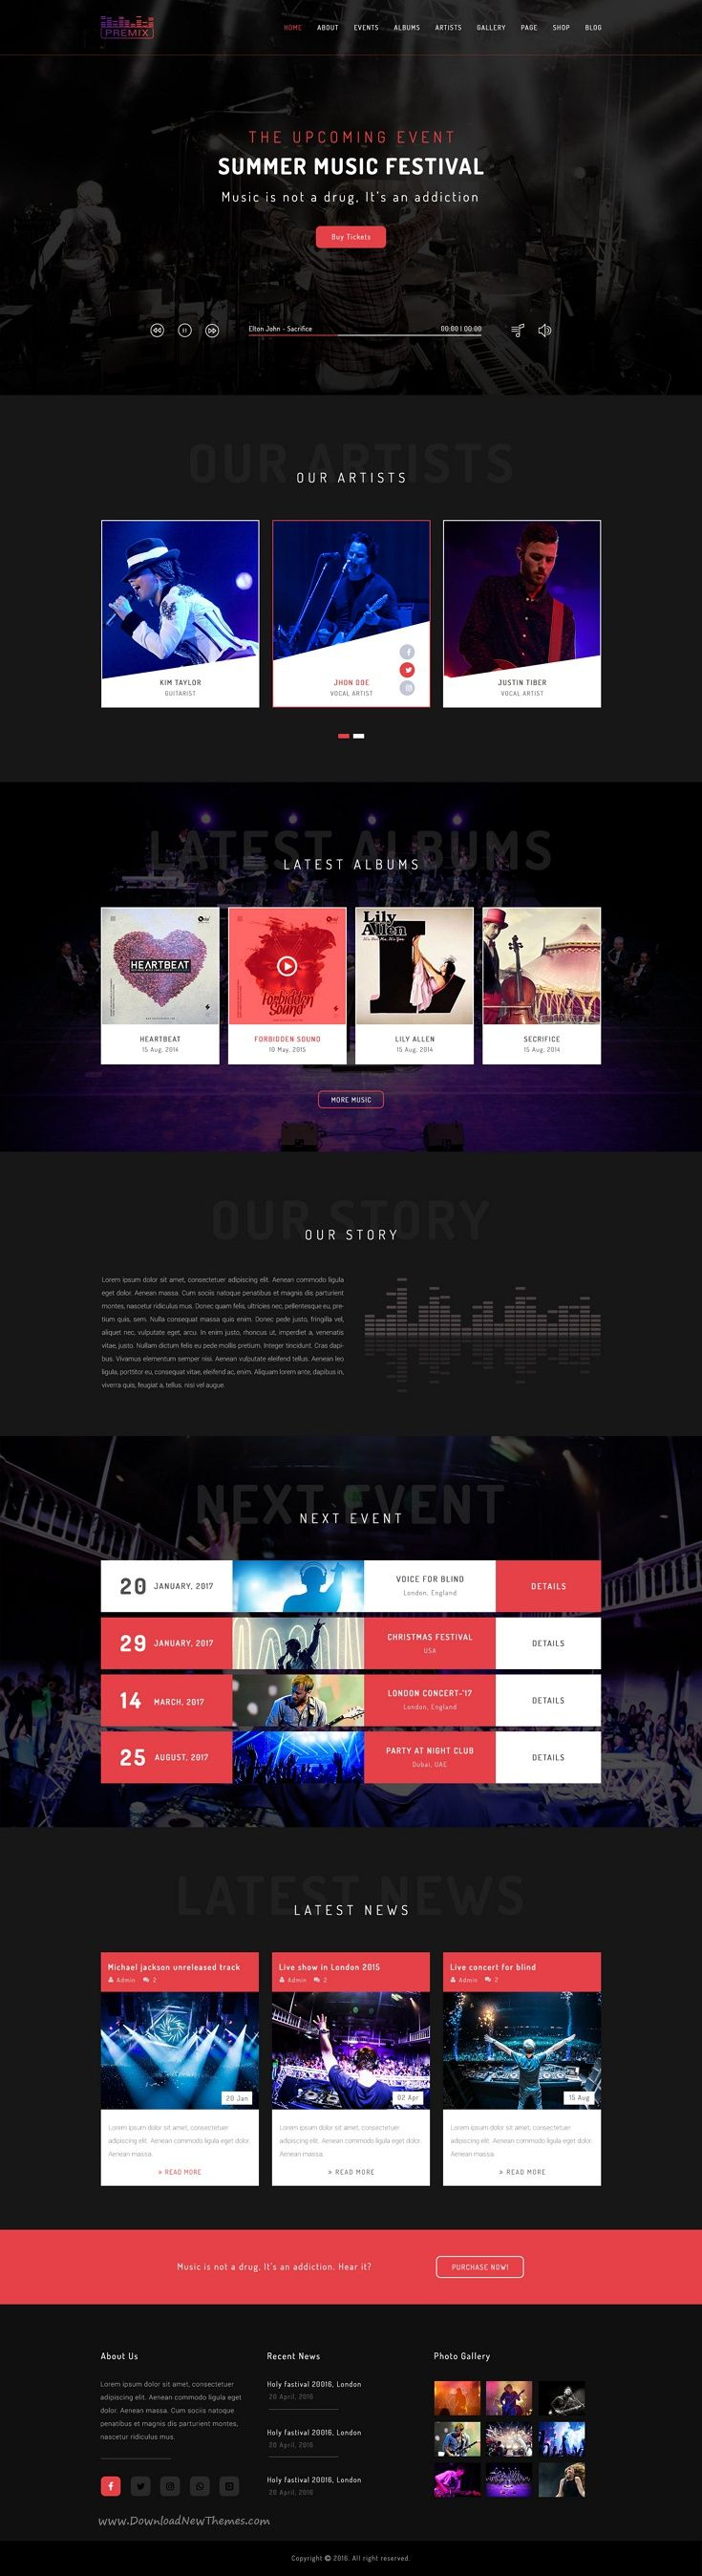 Premix is a modern and unique #PSD template designed for #webdesign #music events website download now➩